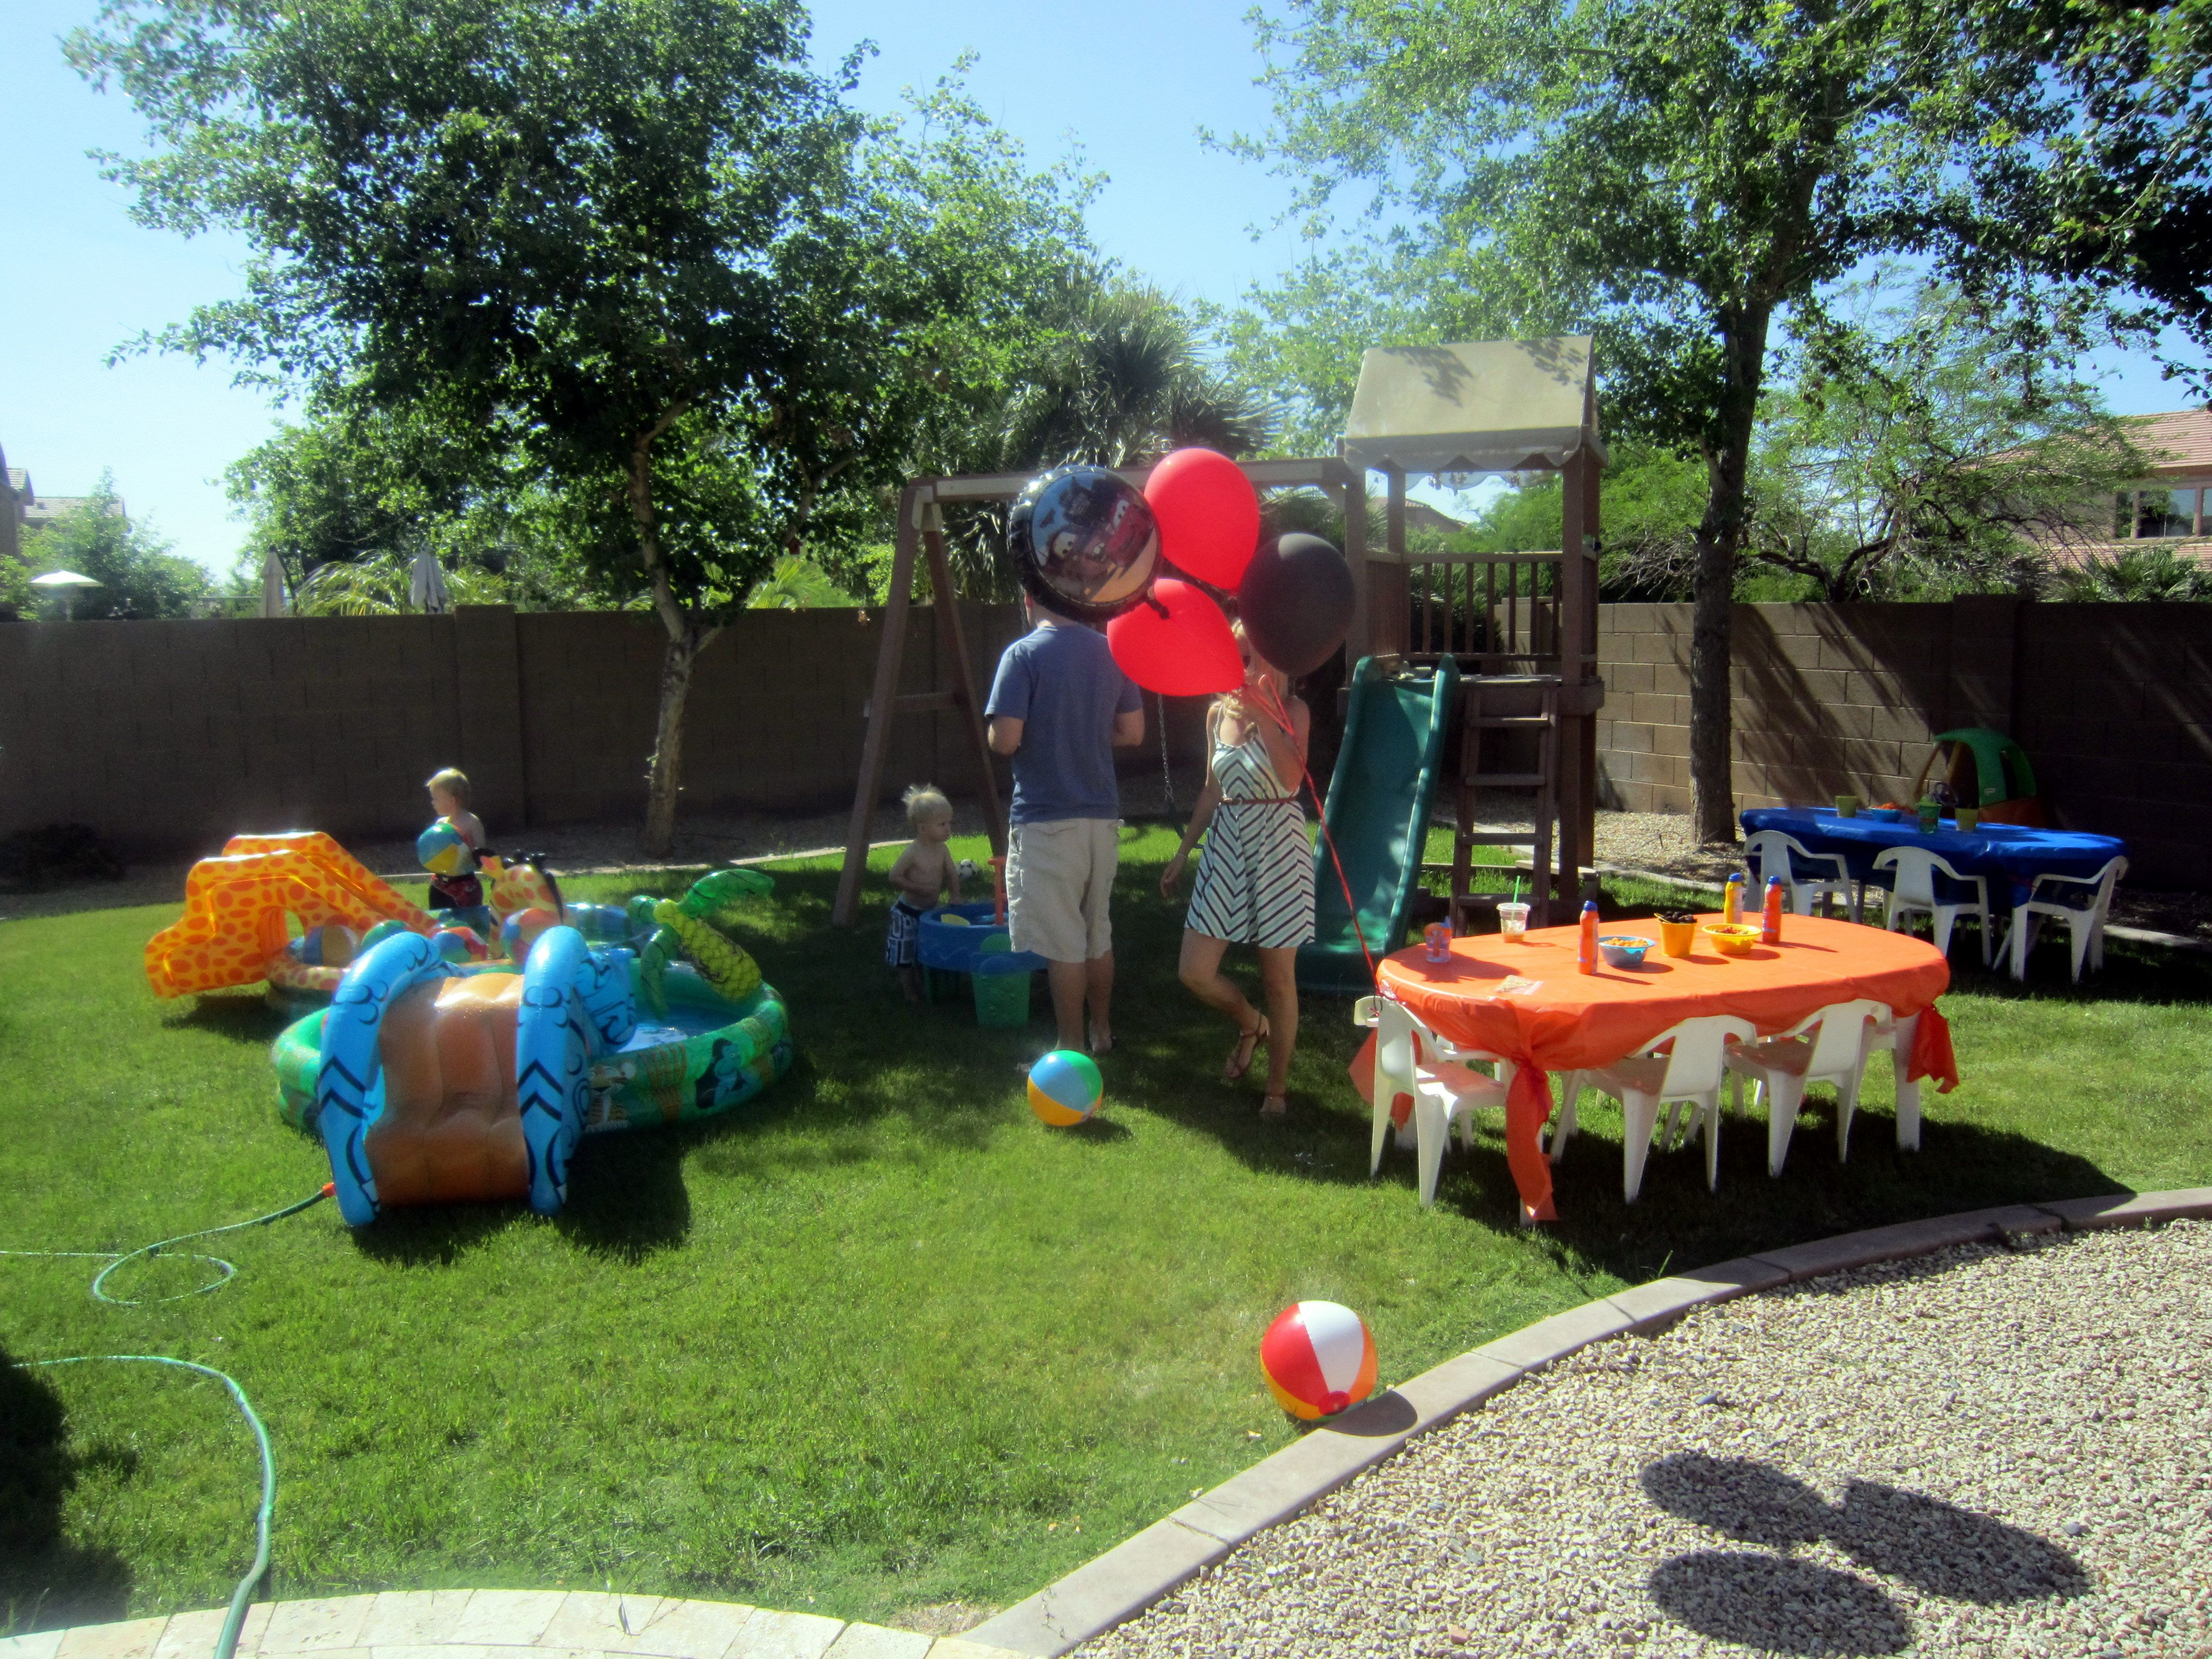 Kiddie Pools With Mini Beach Balls And Water Tables Entertainment For 2 Year Old Ball Bash